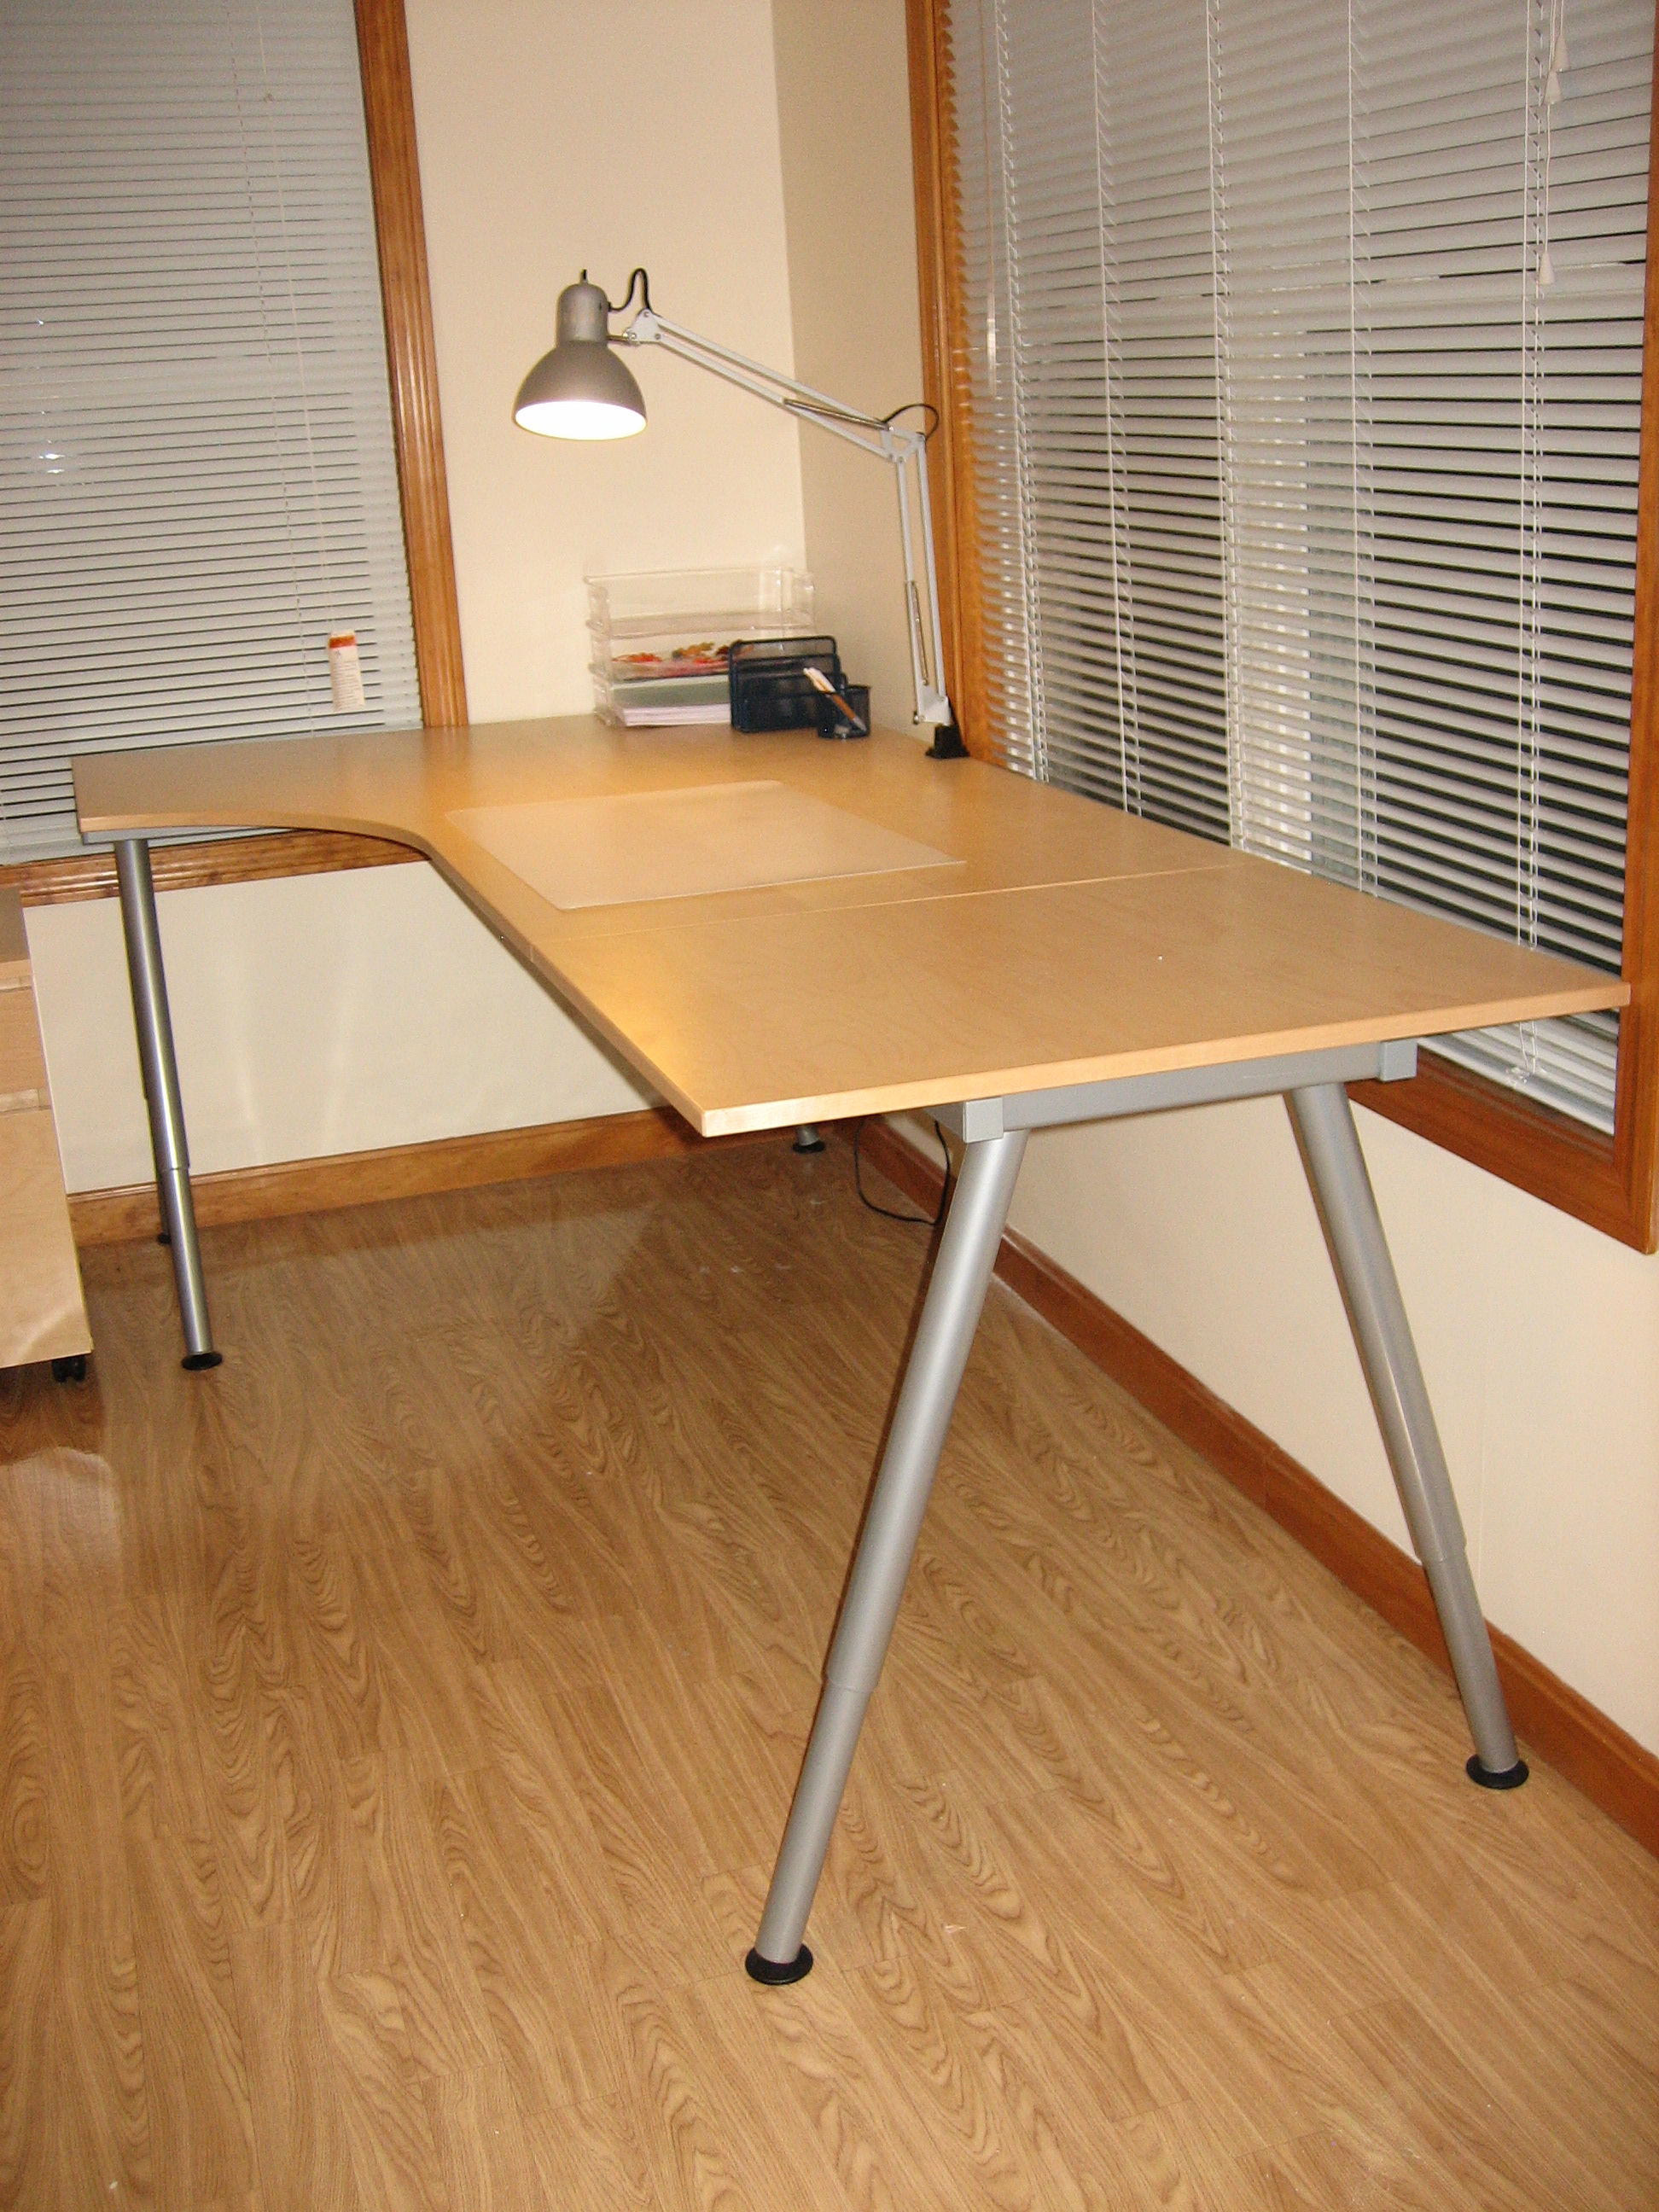 ikea office furniture desk. Ikea Office Desk. Desk Furniture K